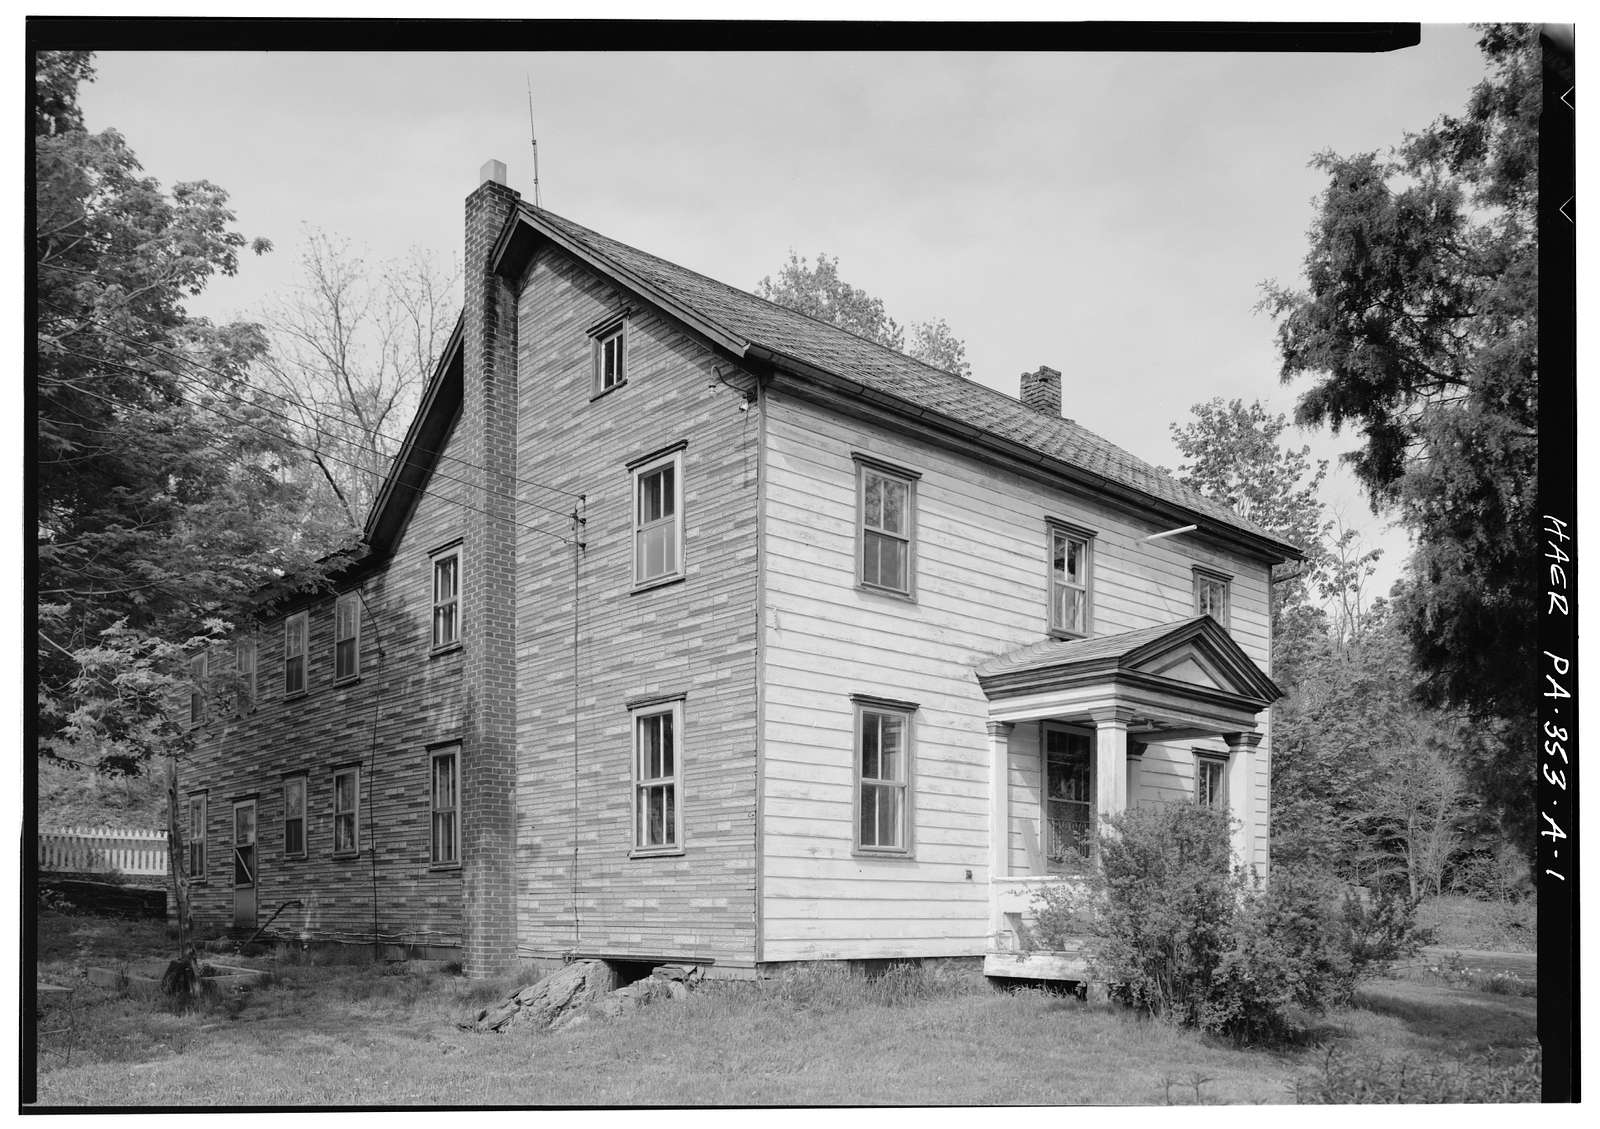 Jackson's Mill, Miller's House, West of Township Route 412 & Township Route 409 junction, Breezewood, Bedford County, PA